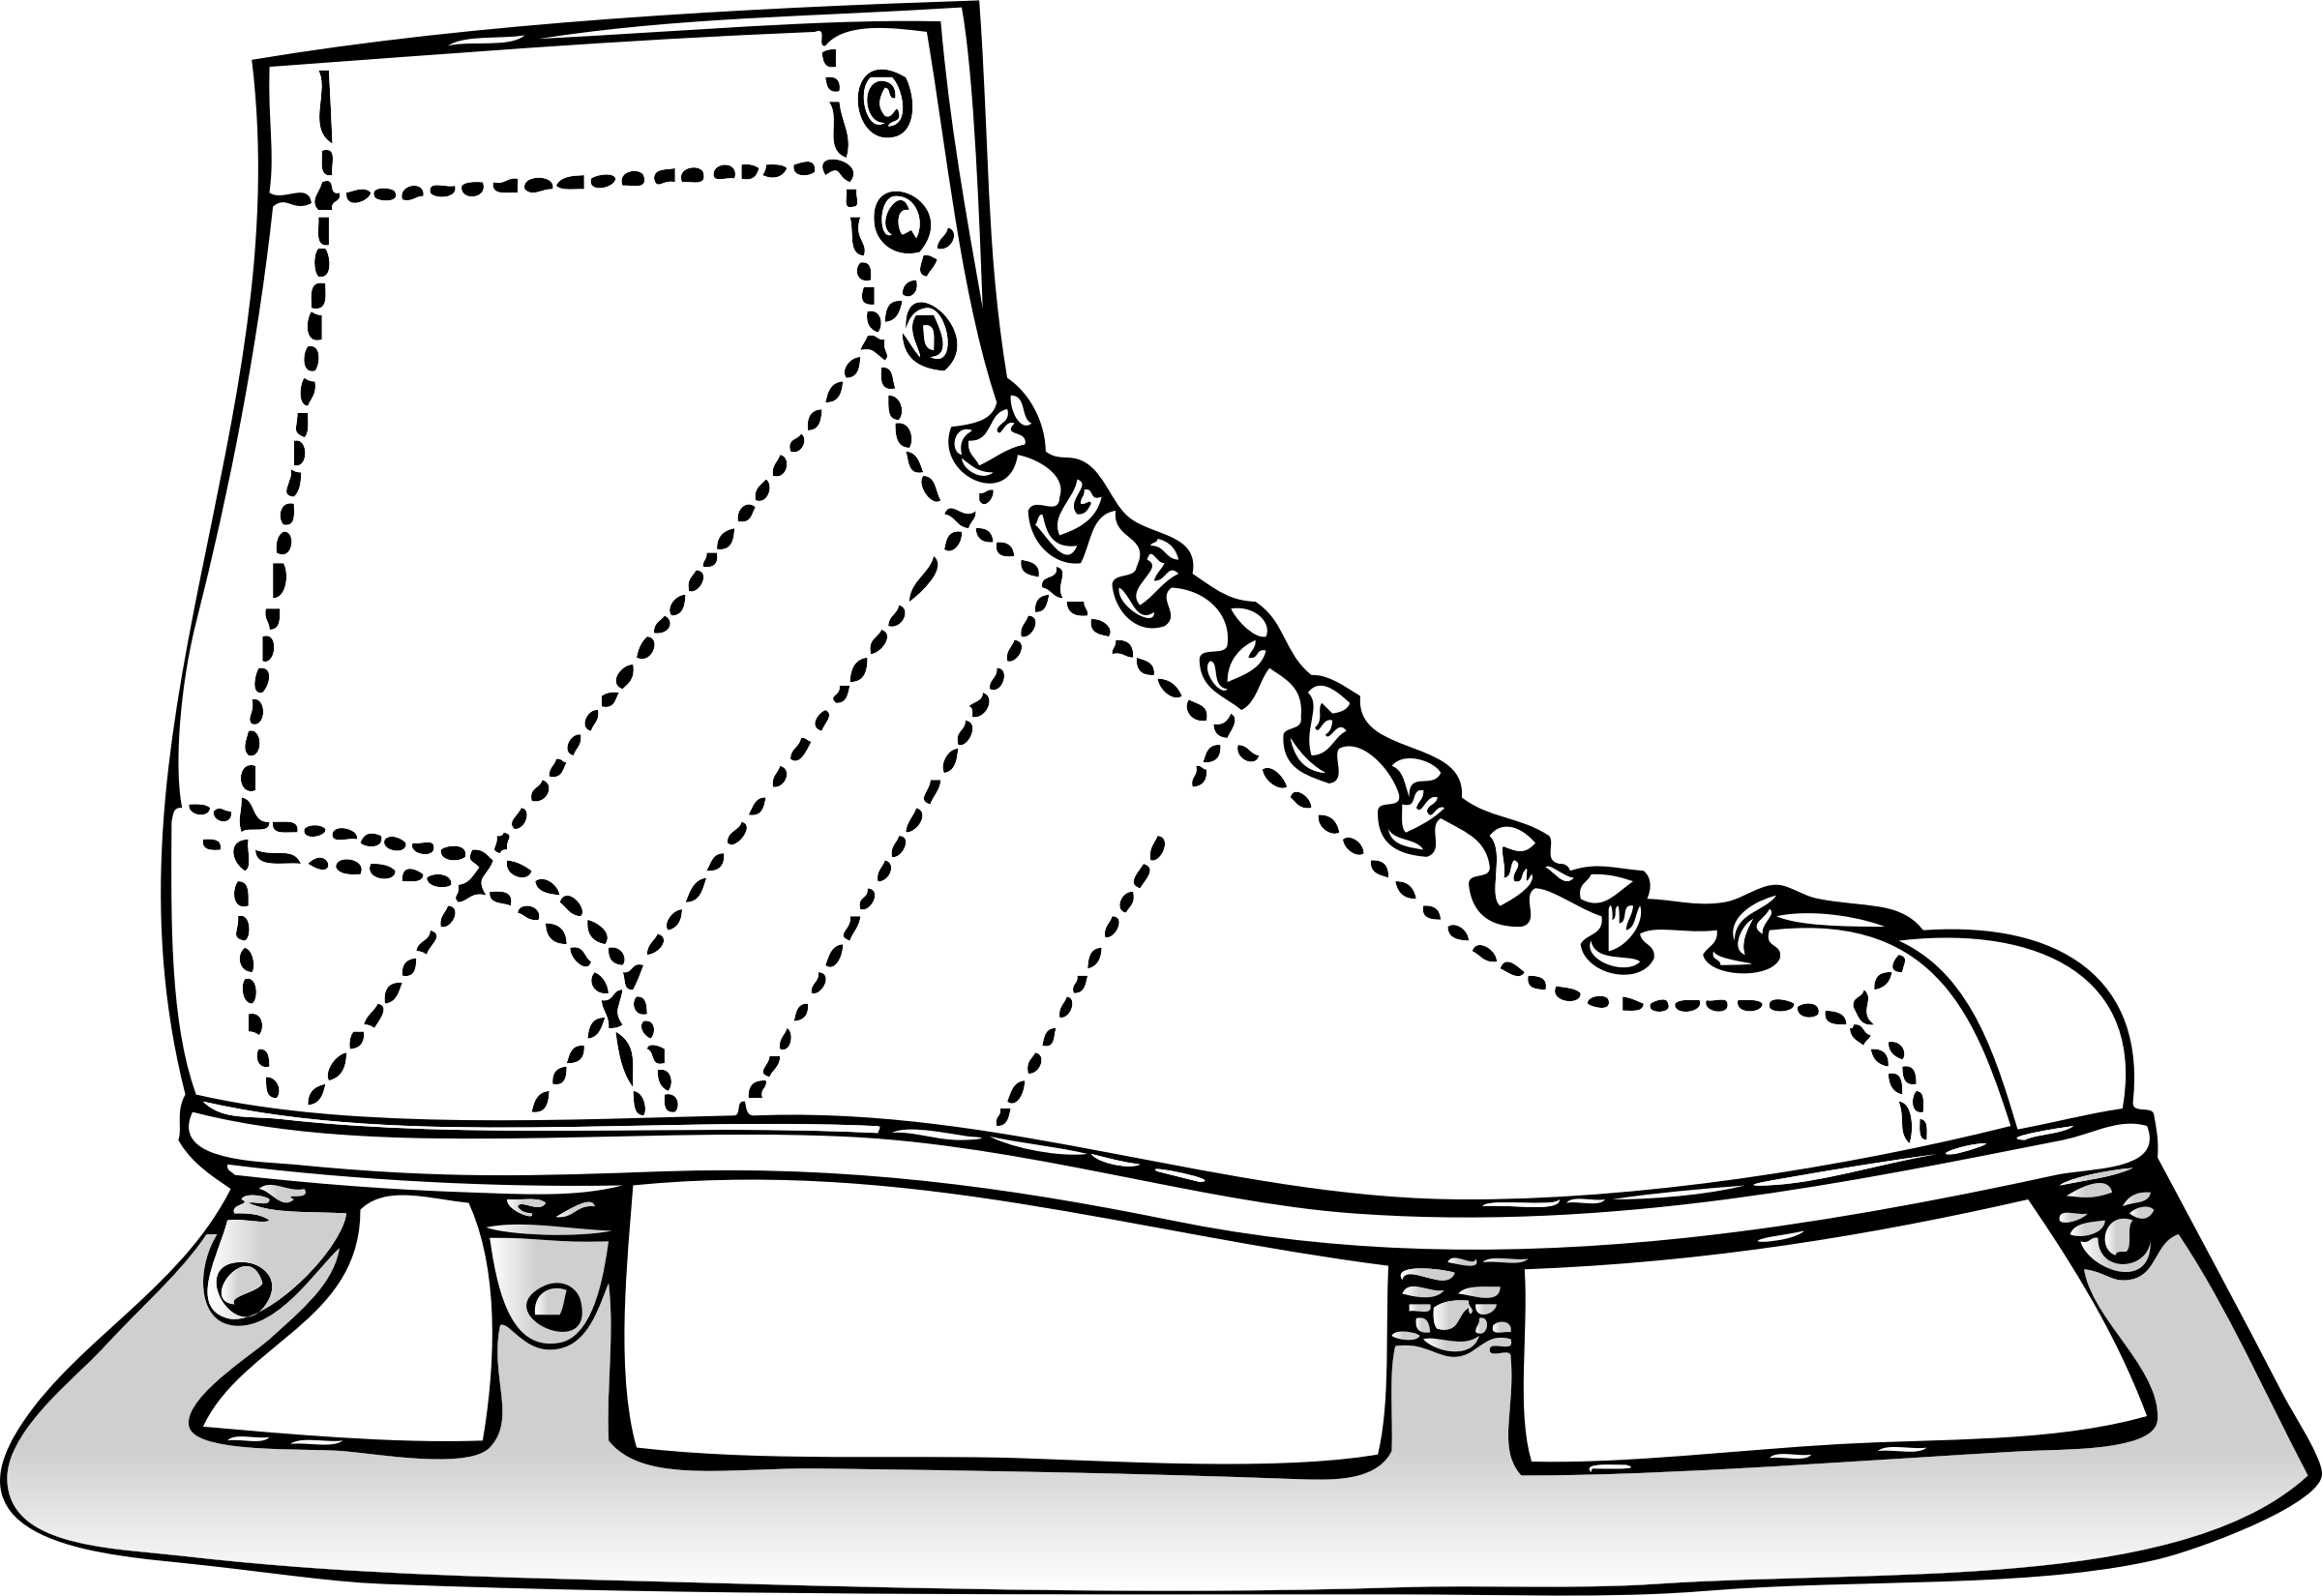 banner free library Ice skating clipart black and white. Skate big image png